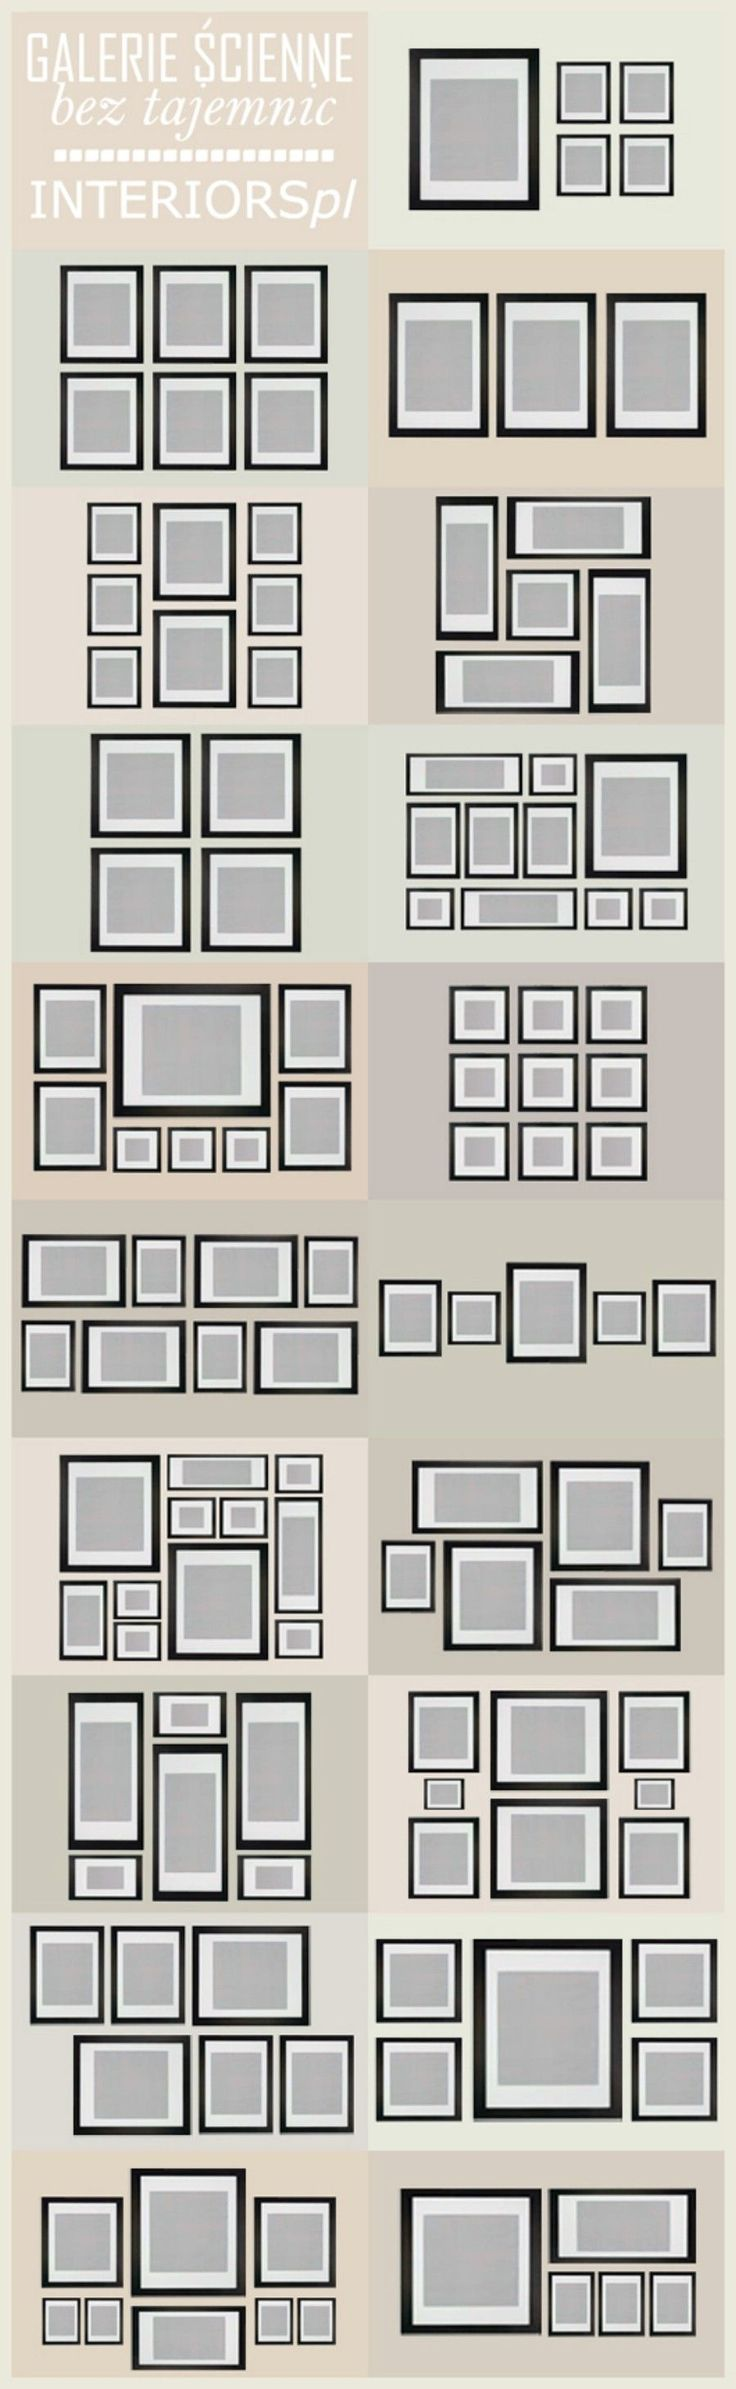 24. Plan a gallery wall - 50 Amazingly Clever Cheat Sheets To Simplify Home Decorating Projects